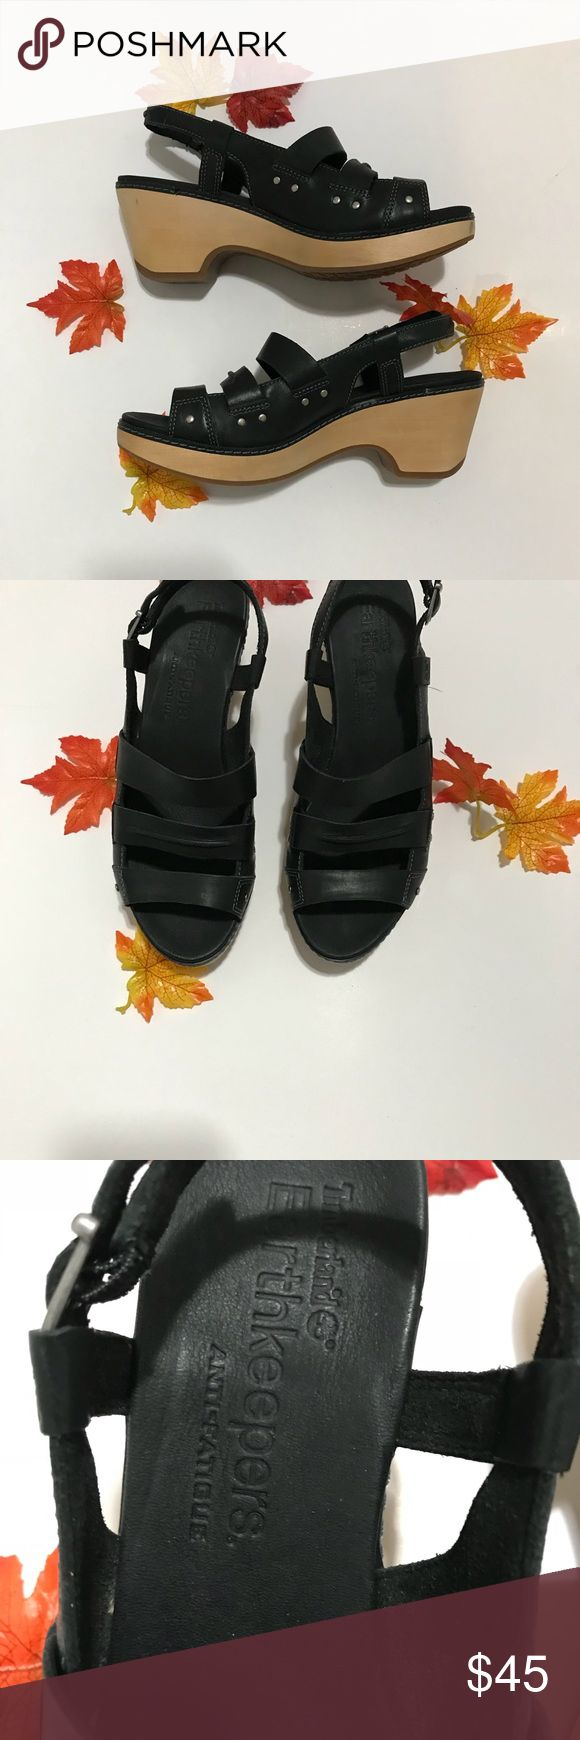 Timberland Earthkeeper Black Leather Sandals Timberland Earthkeeper Black Leather Sandals. Like New. Anti Fatigue and lightweight design. Timberland Shoes Sandals